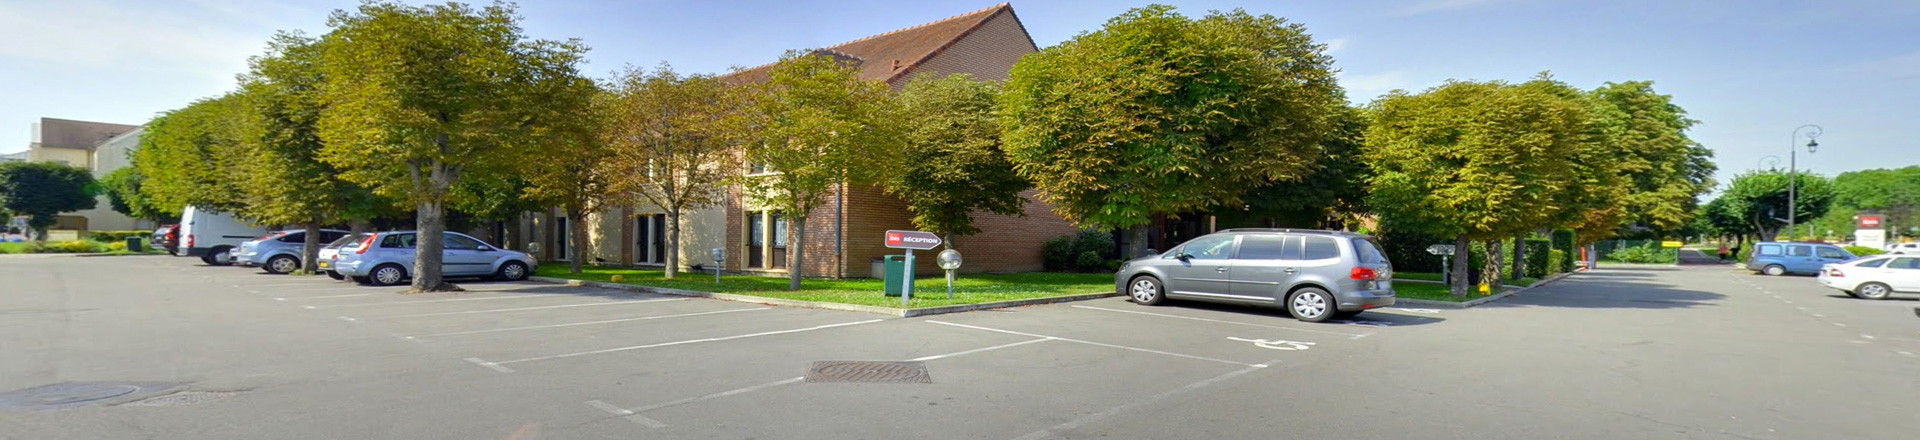 Hotel maisons laffitte parking